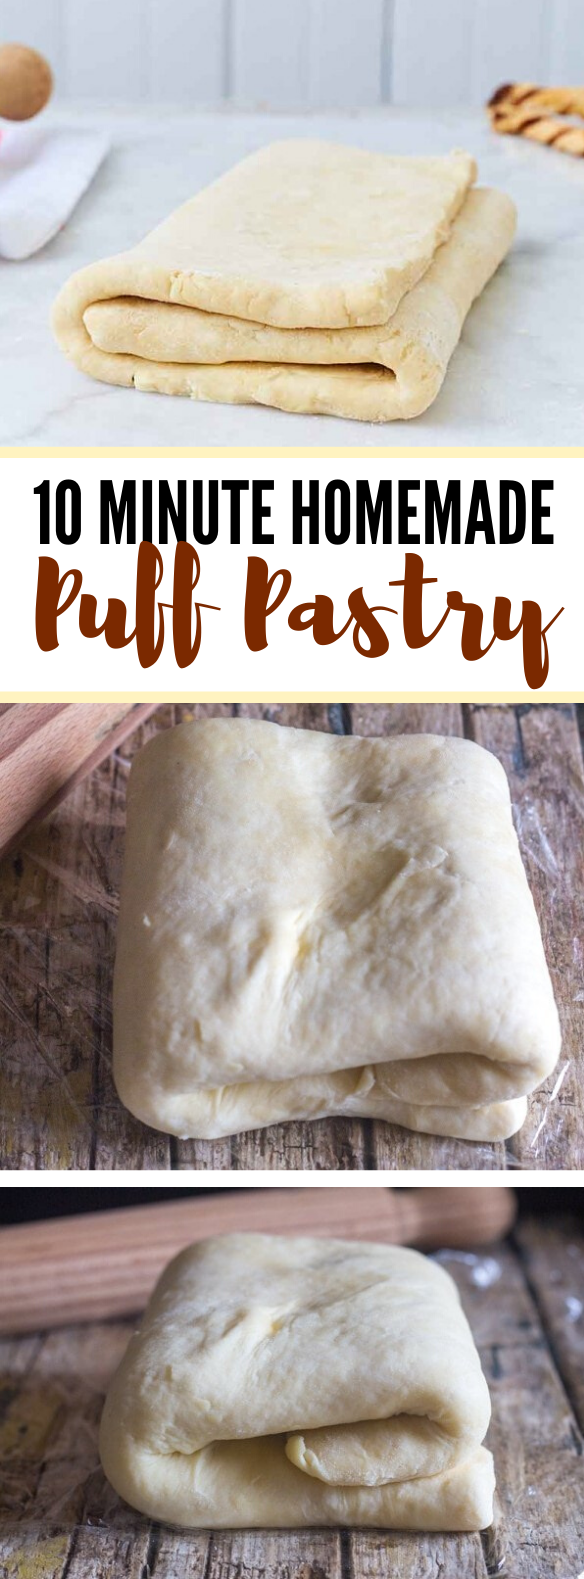 10 Minute Homemade Puff Pastry #meals #appetizers